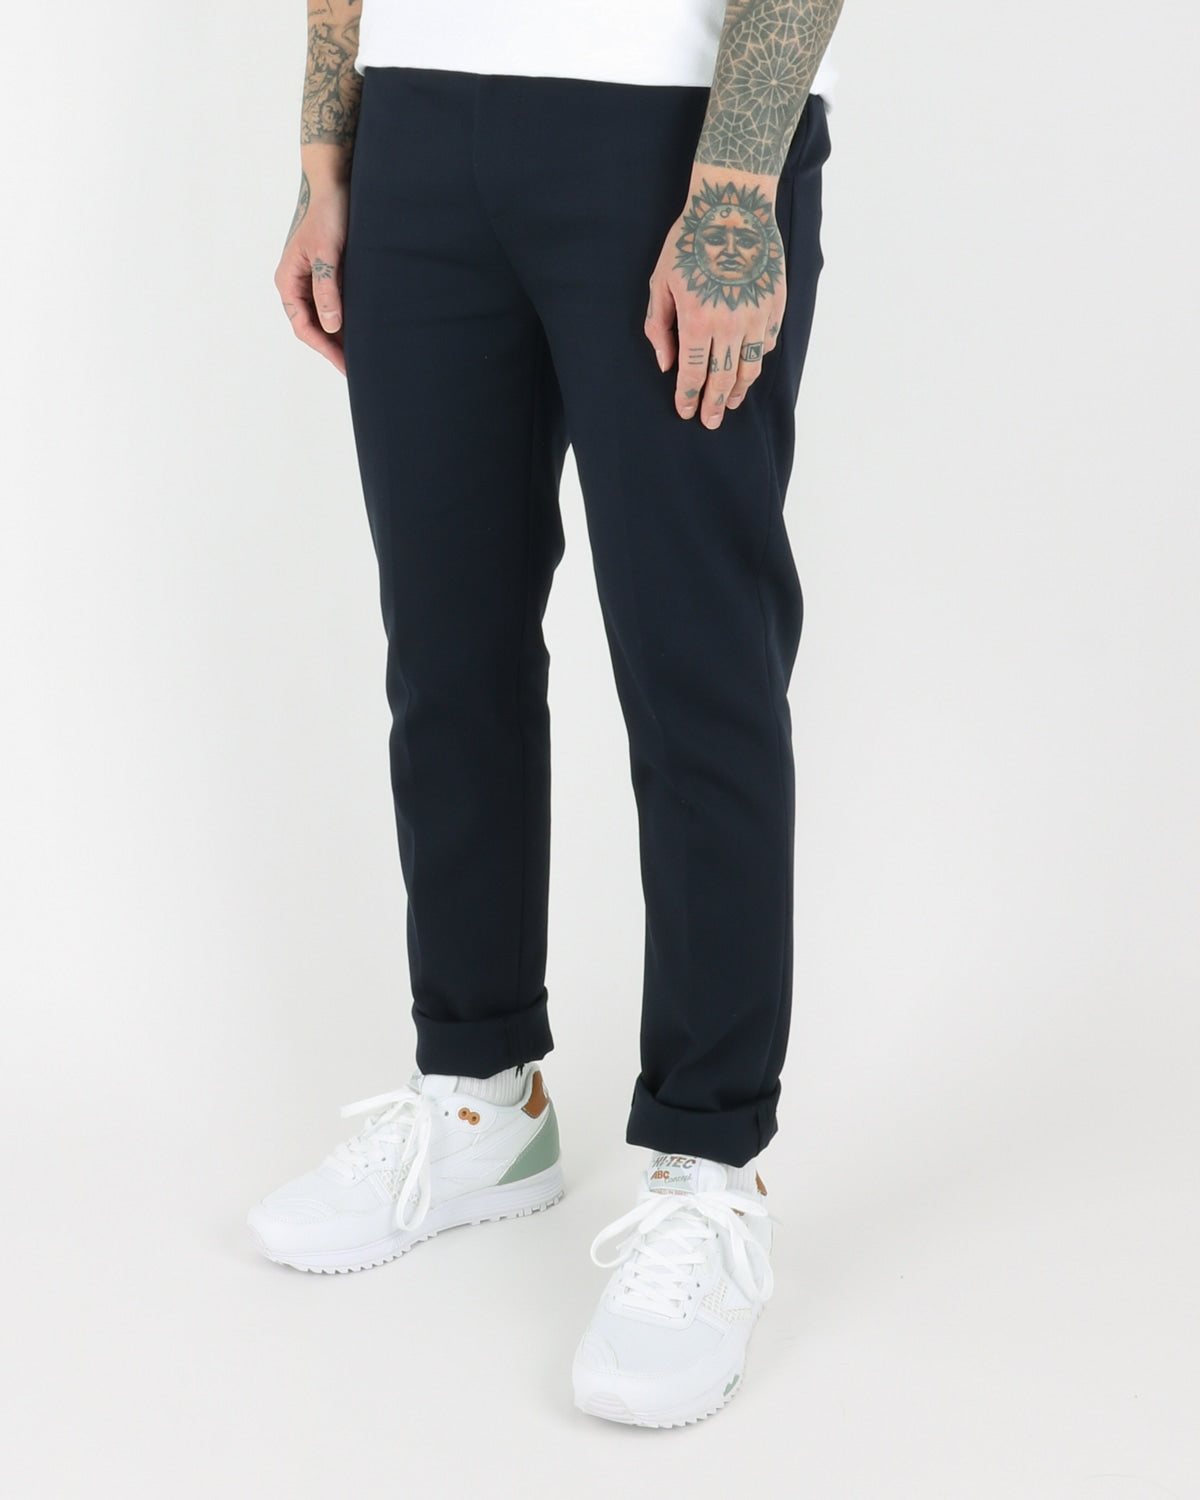 libertine libertine_transworld pants_navy_view_2_2